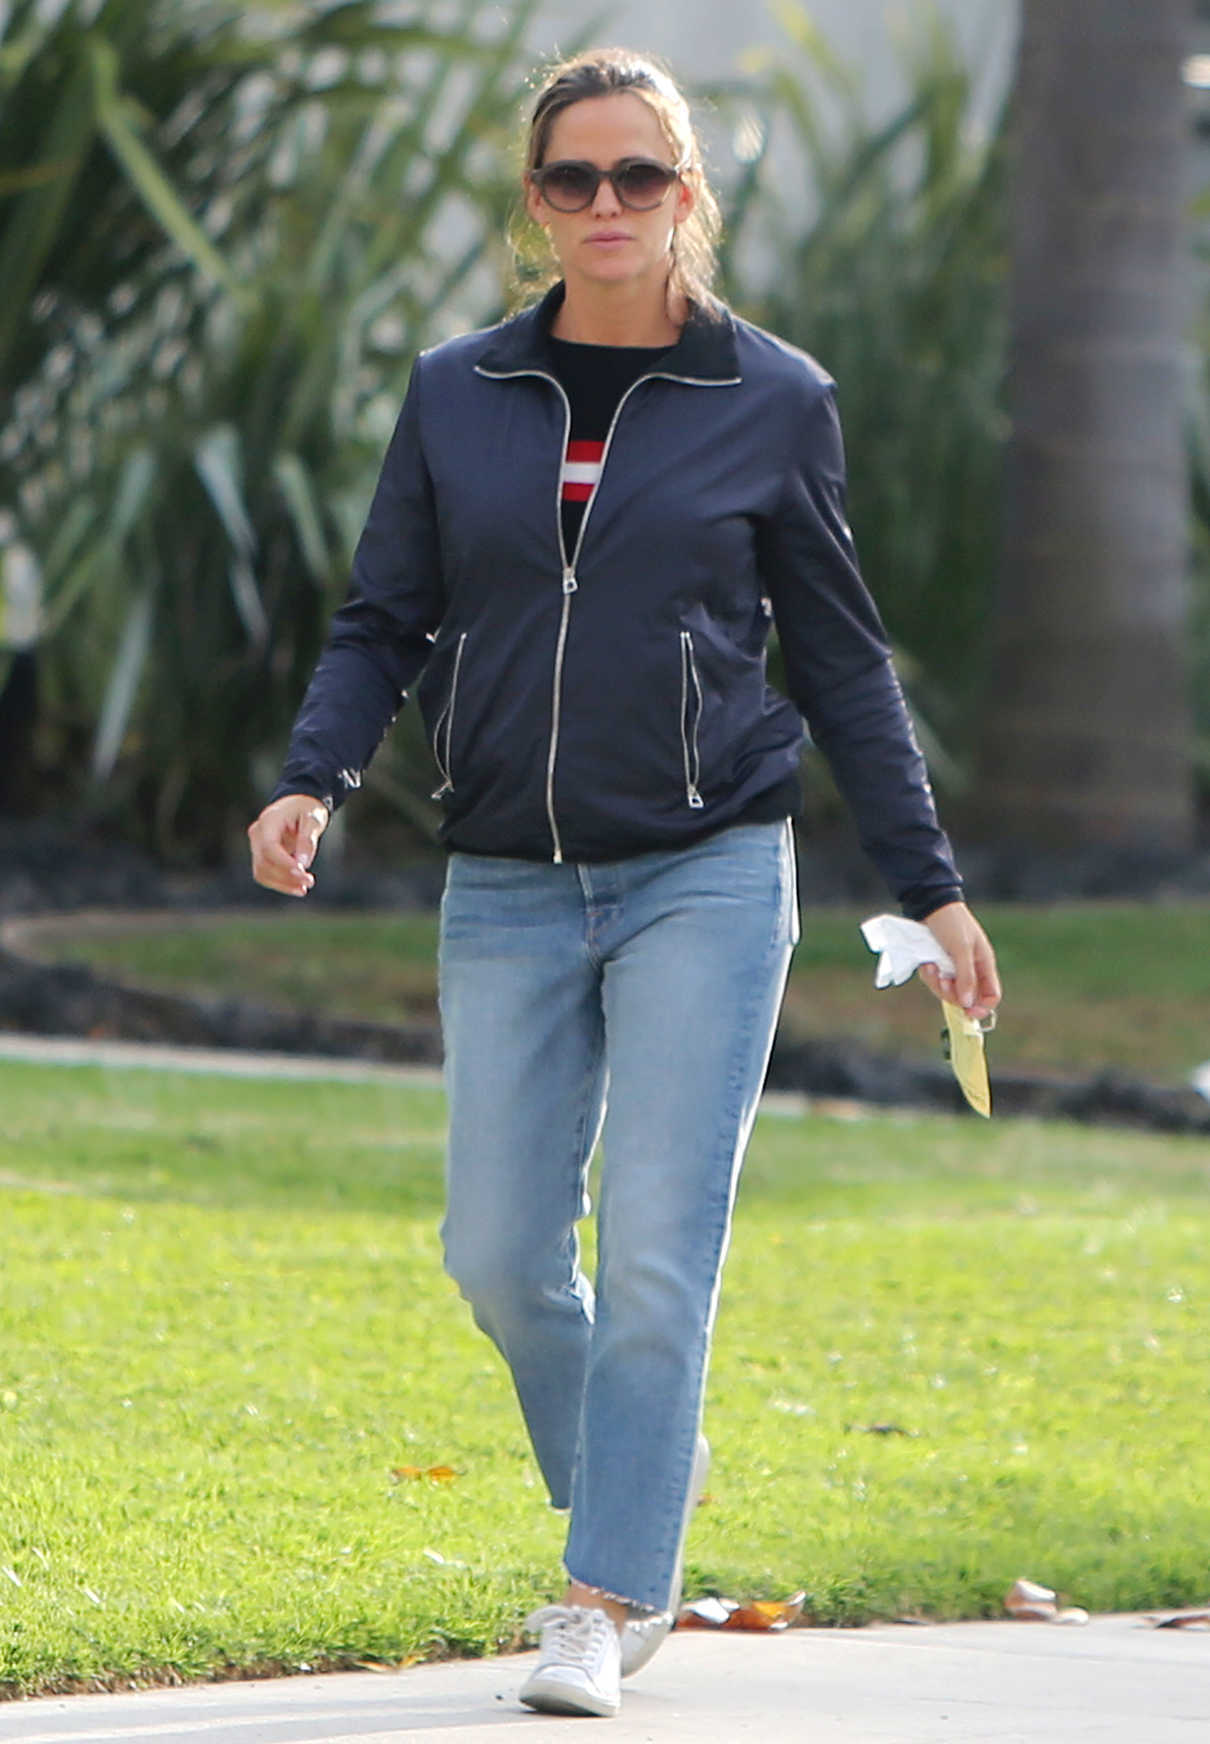 Jennifer Garner in a Blue Jacket